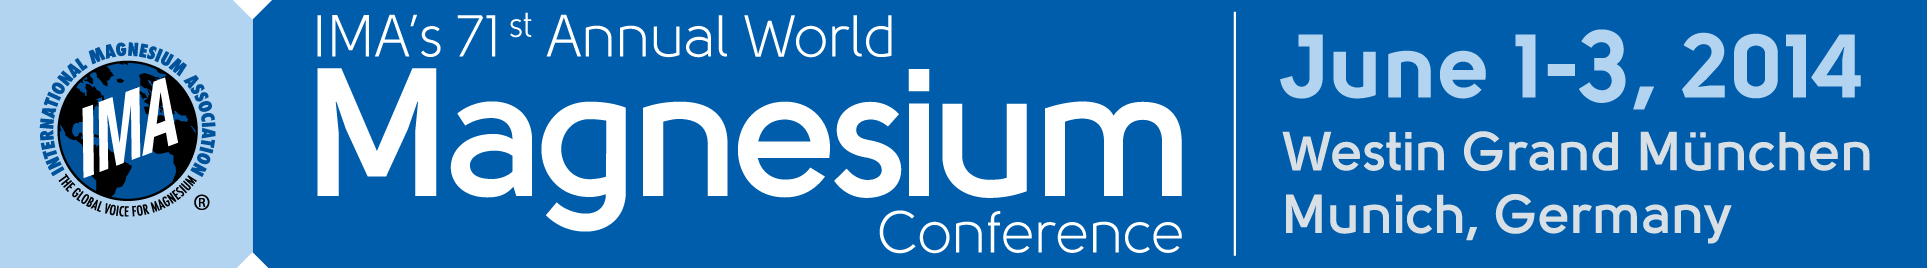 IMA's 71st World Magnesium Conference